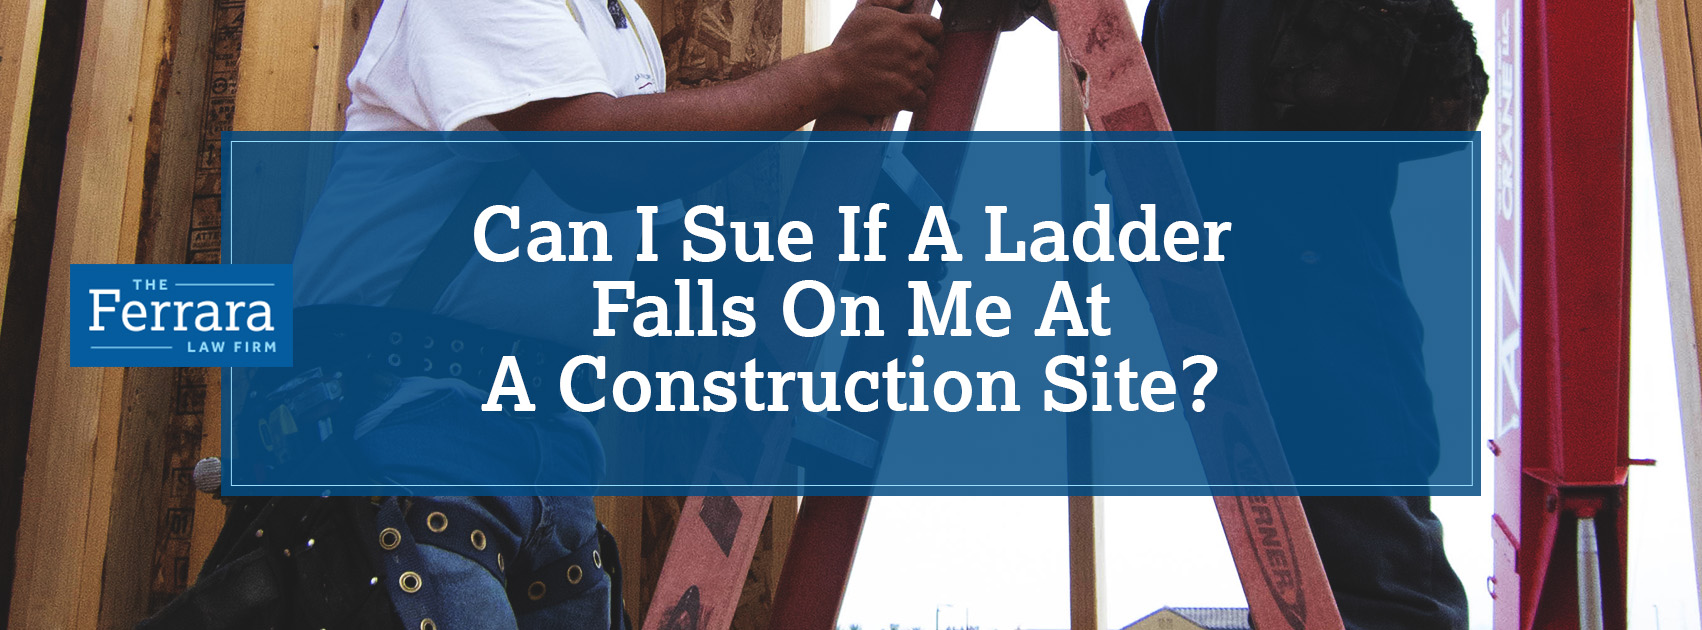 Can I Sue If A Ladder Falls On Me At A Construction Site?